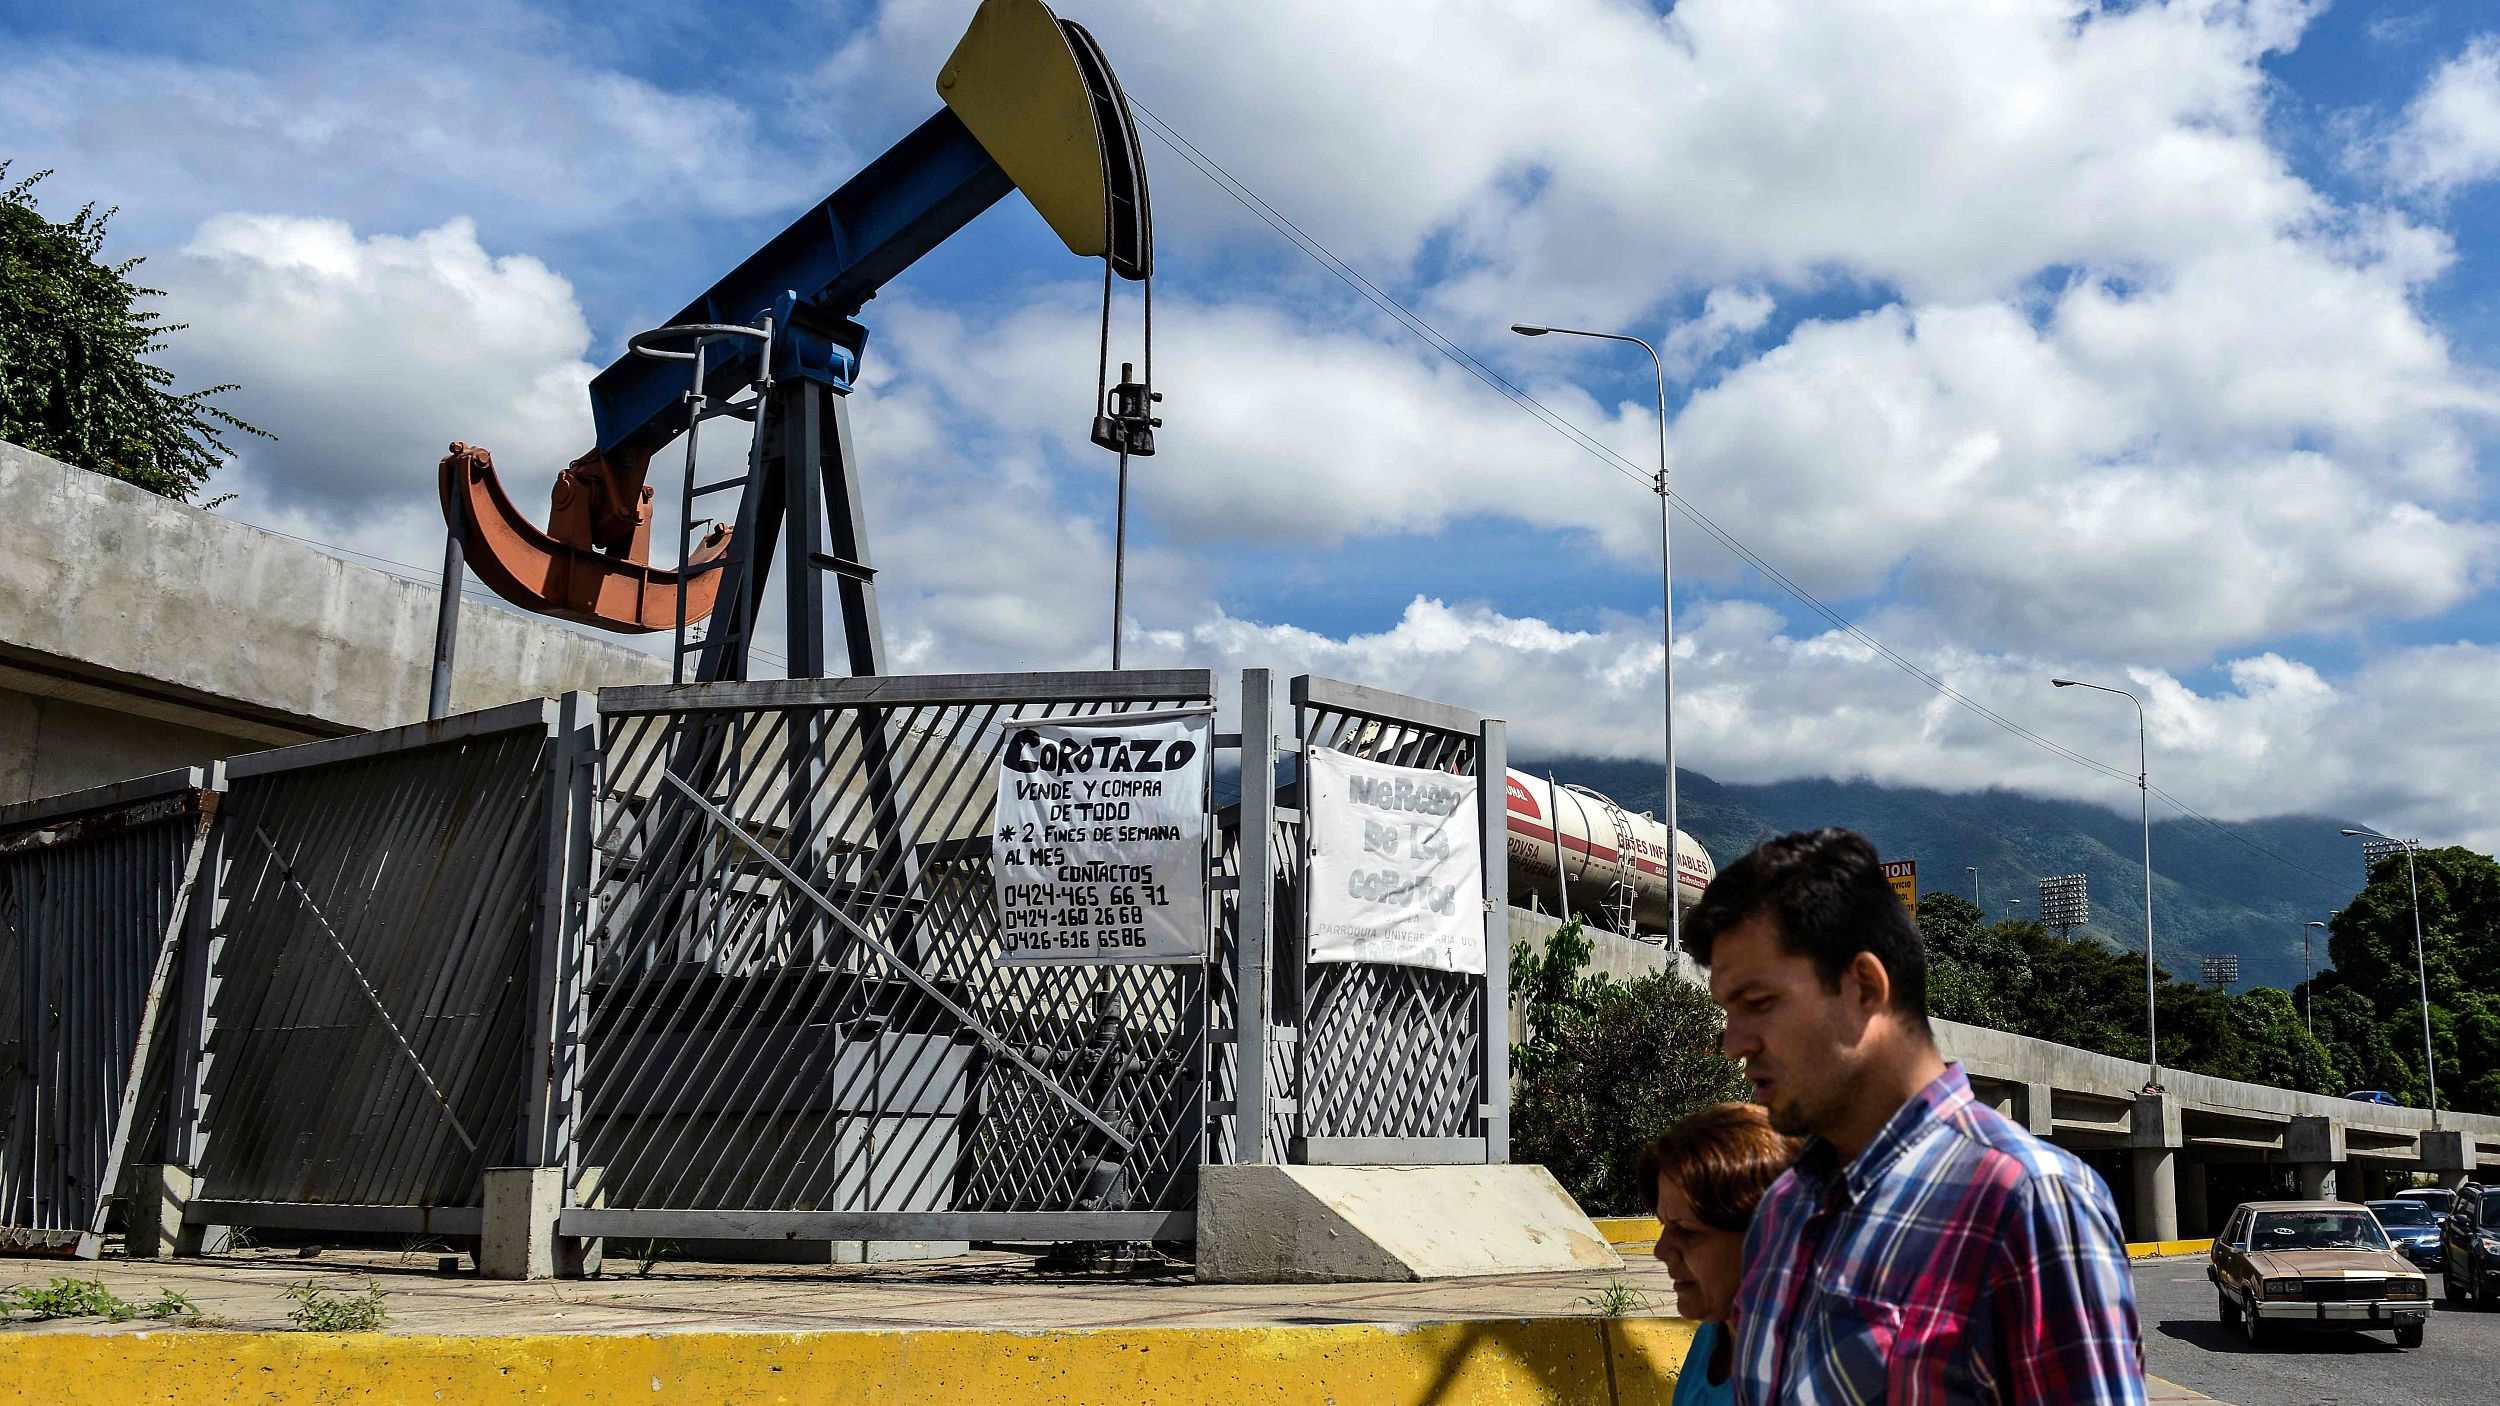 venezuela oil dependence and its